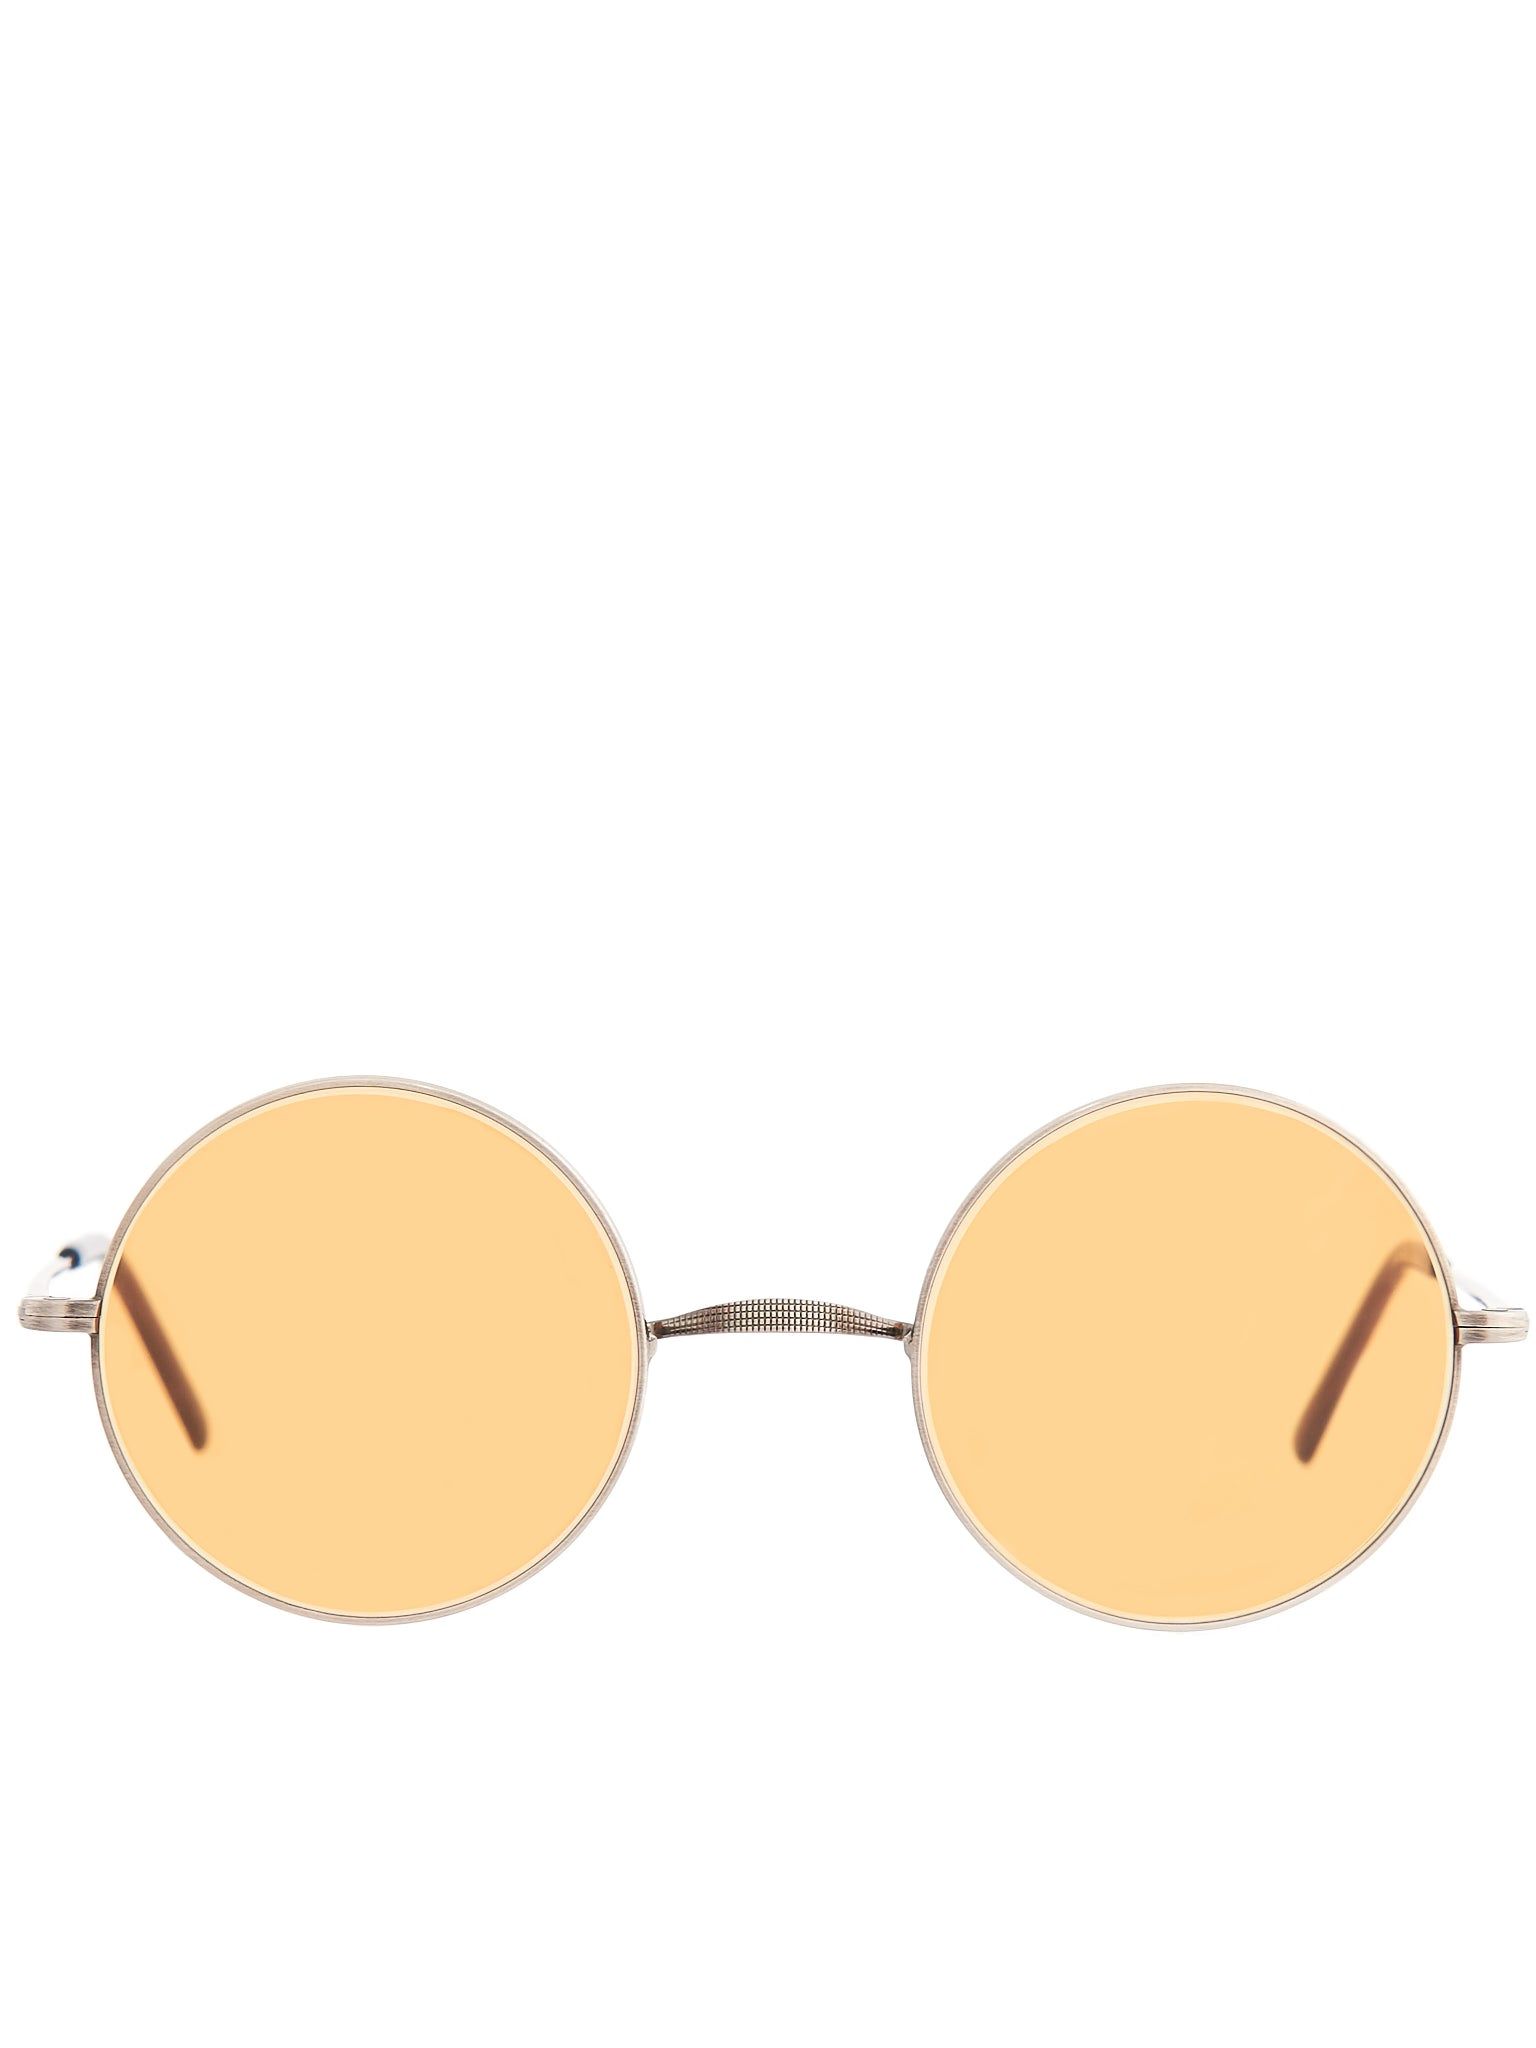 Round Sunglasses (SPM-CLASSIC-ROUND-AS-HE-ORANGE)